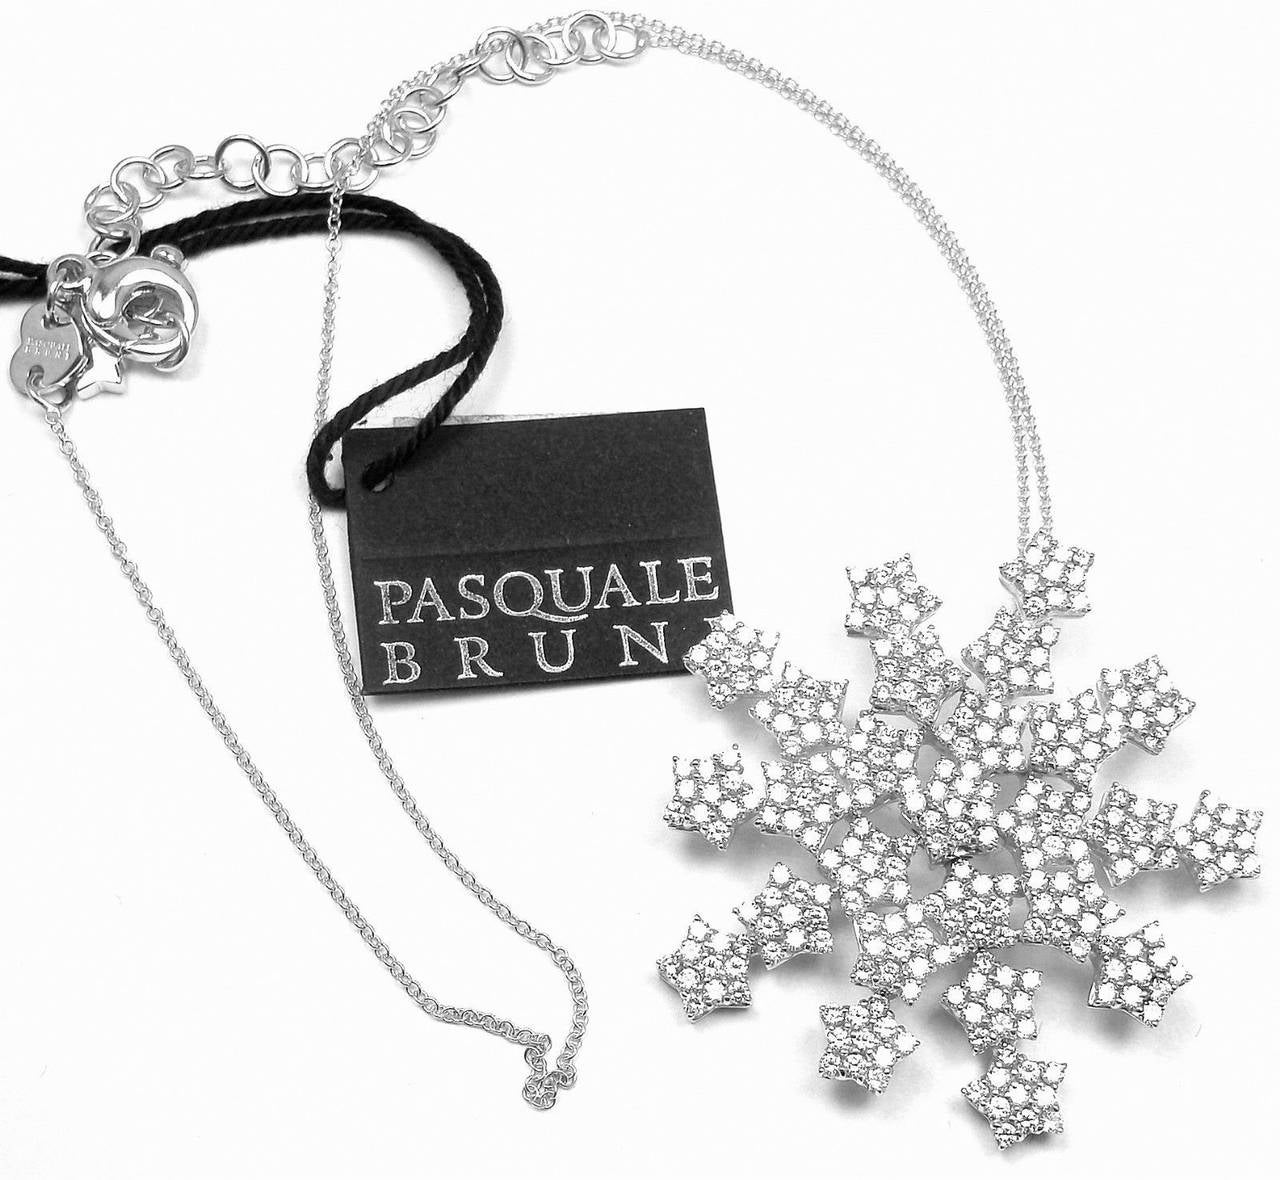 Pasquale Bruni 4.35 Carat Diamond Gold Snow Flake Necklace For Sale 2